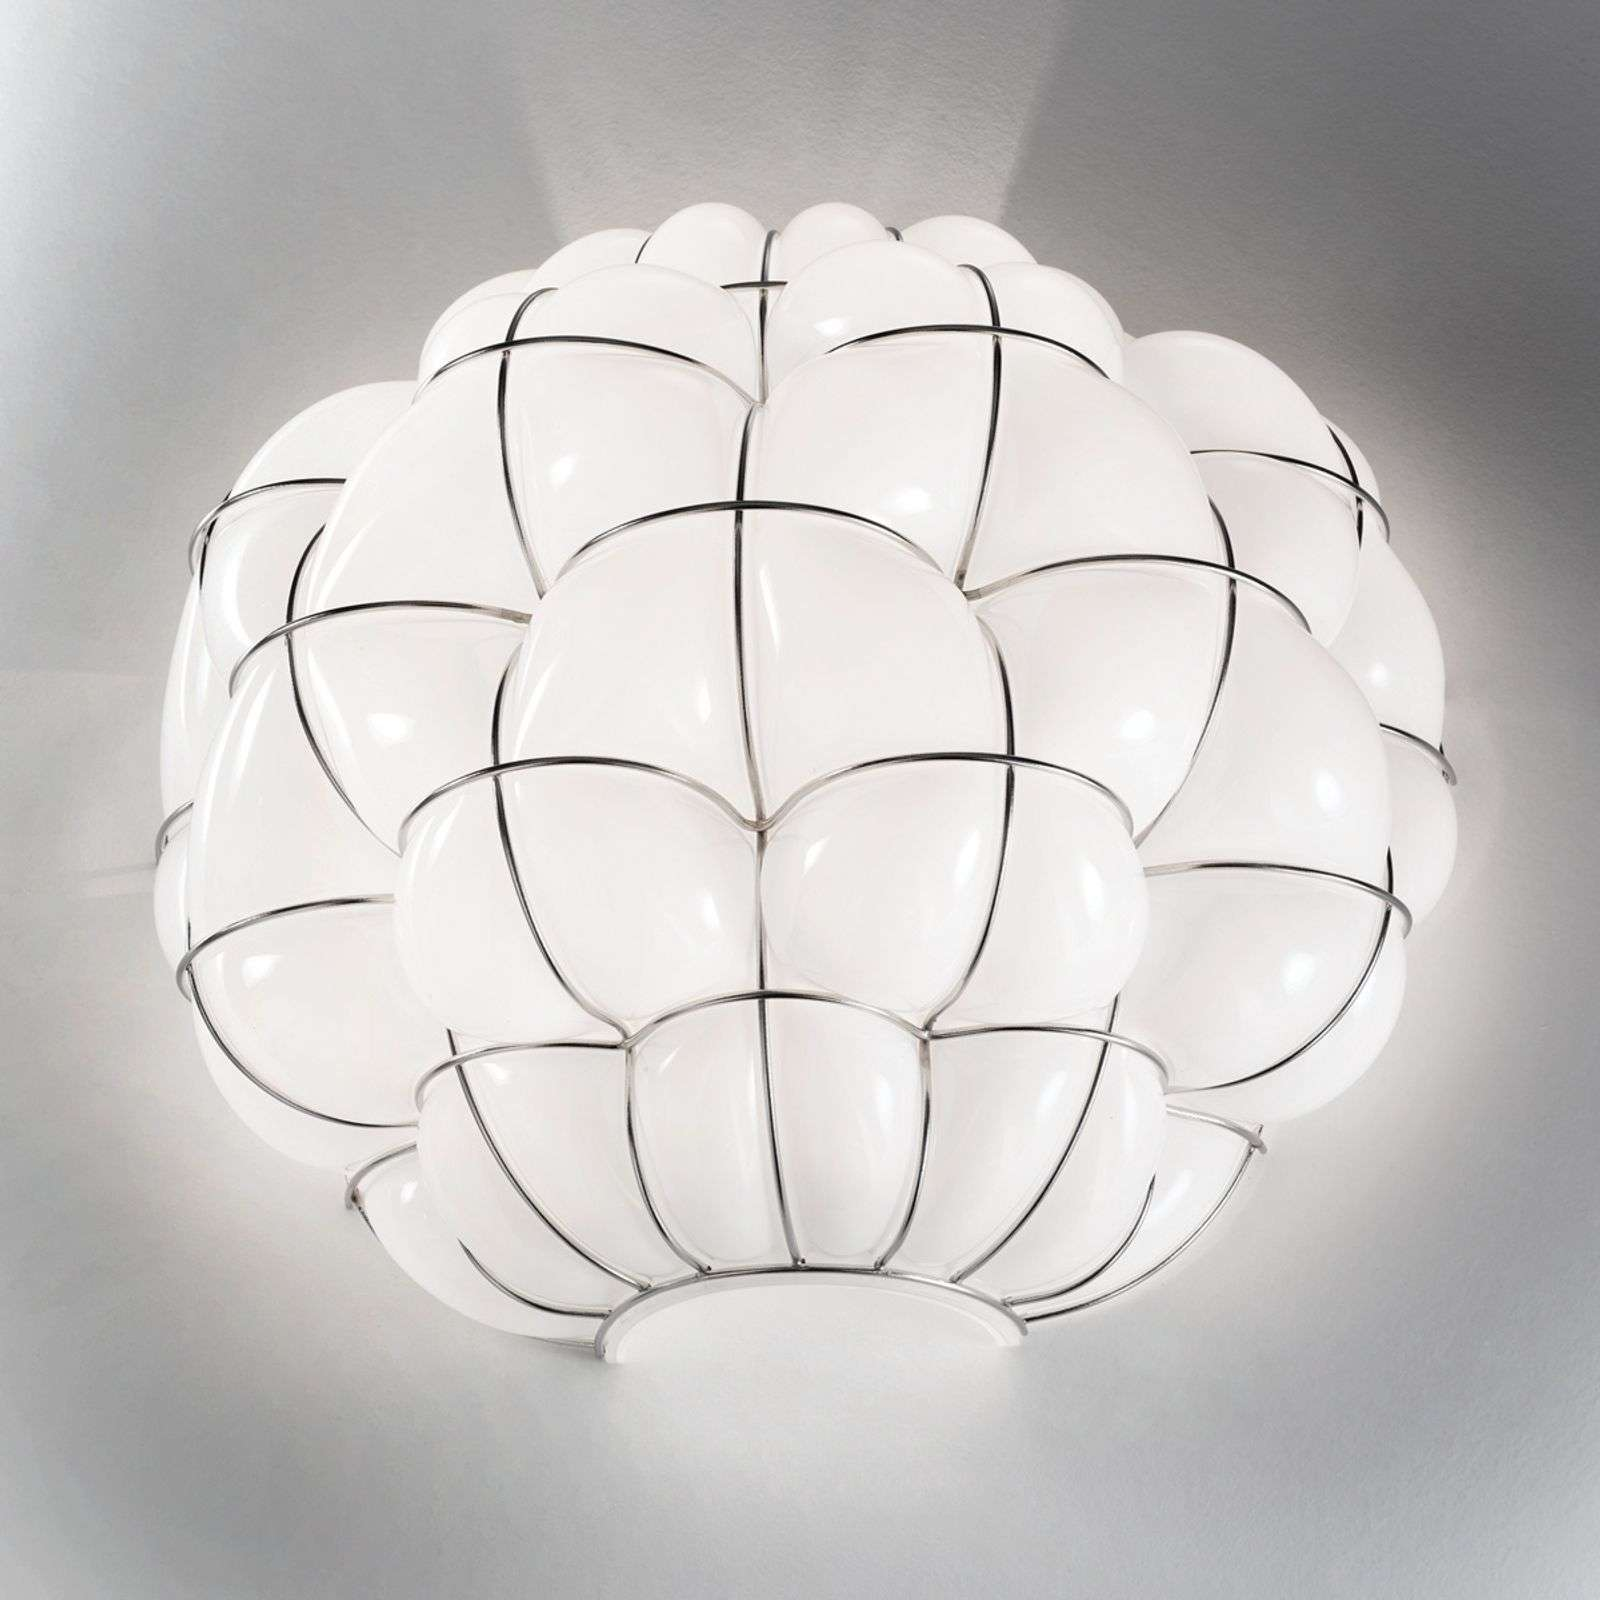 Wandlamp Pouff in wit, roestvrij staal